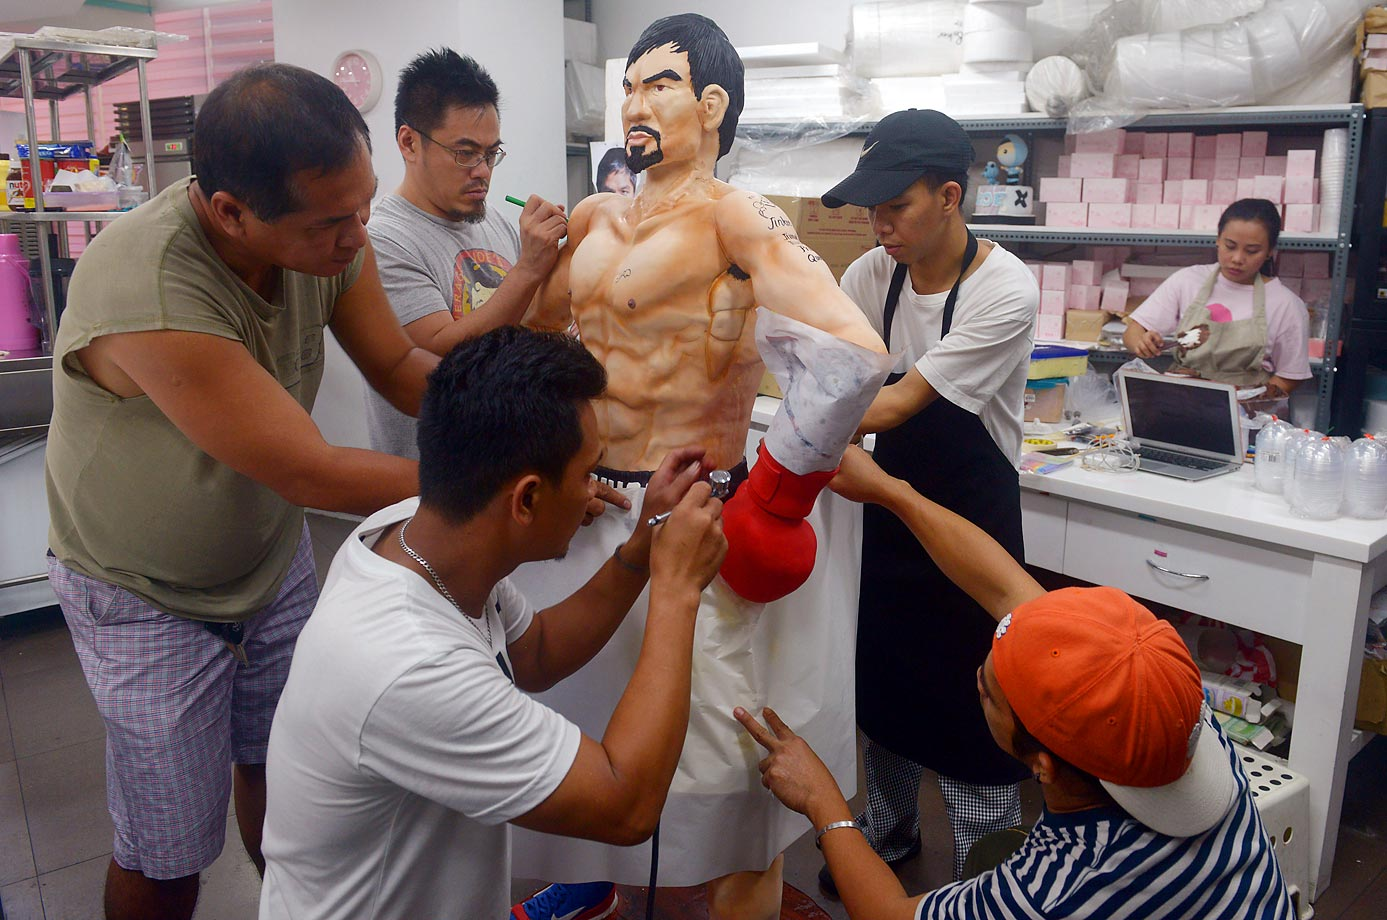 The Bunny Baker Cafe in Manila produced life-sized boxing cakes of Manny Pacquiao, which took about a week to bake and assemble, and would cost you about $4,000.